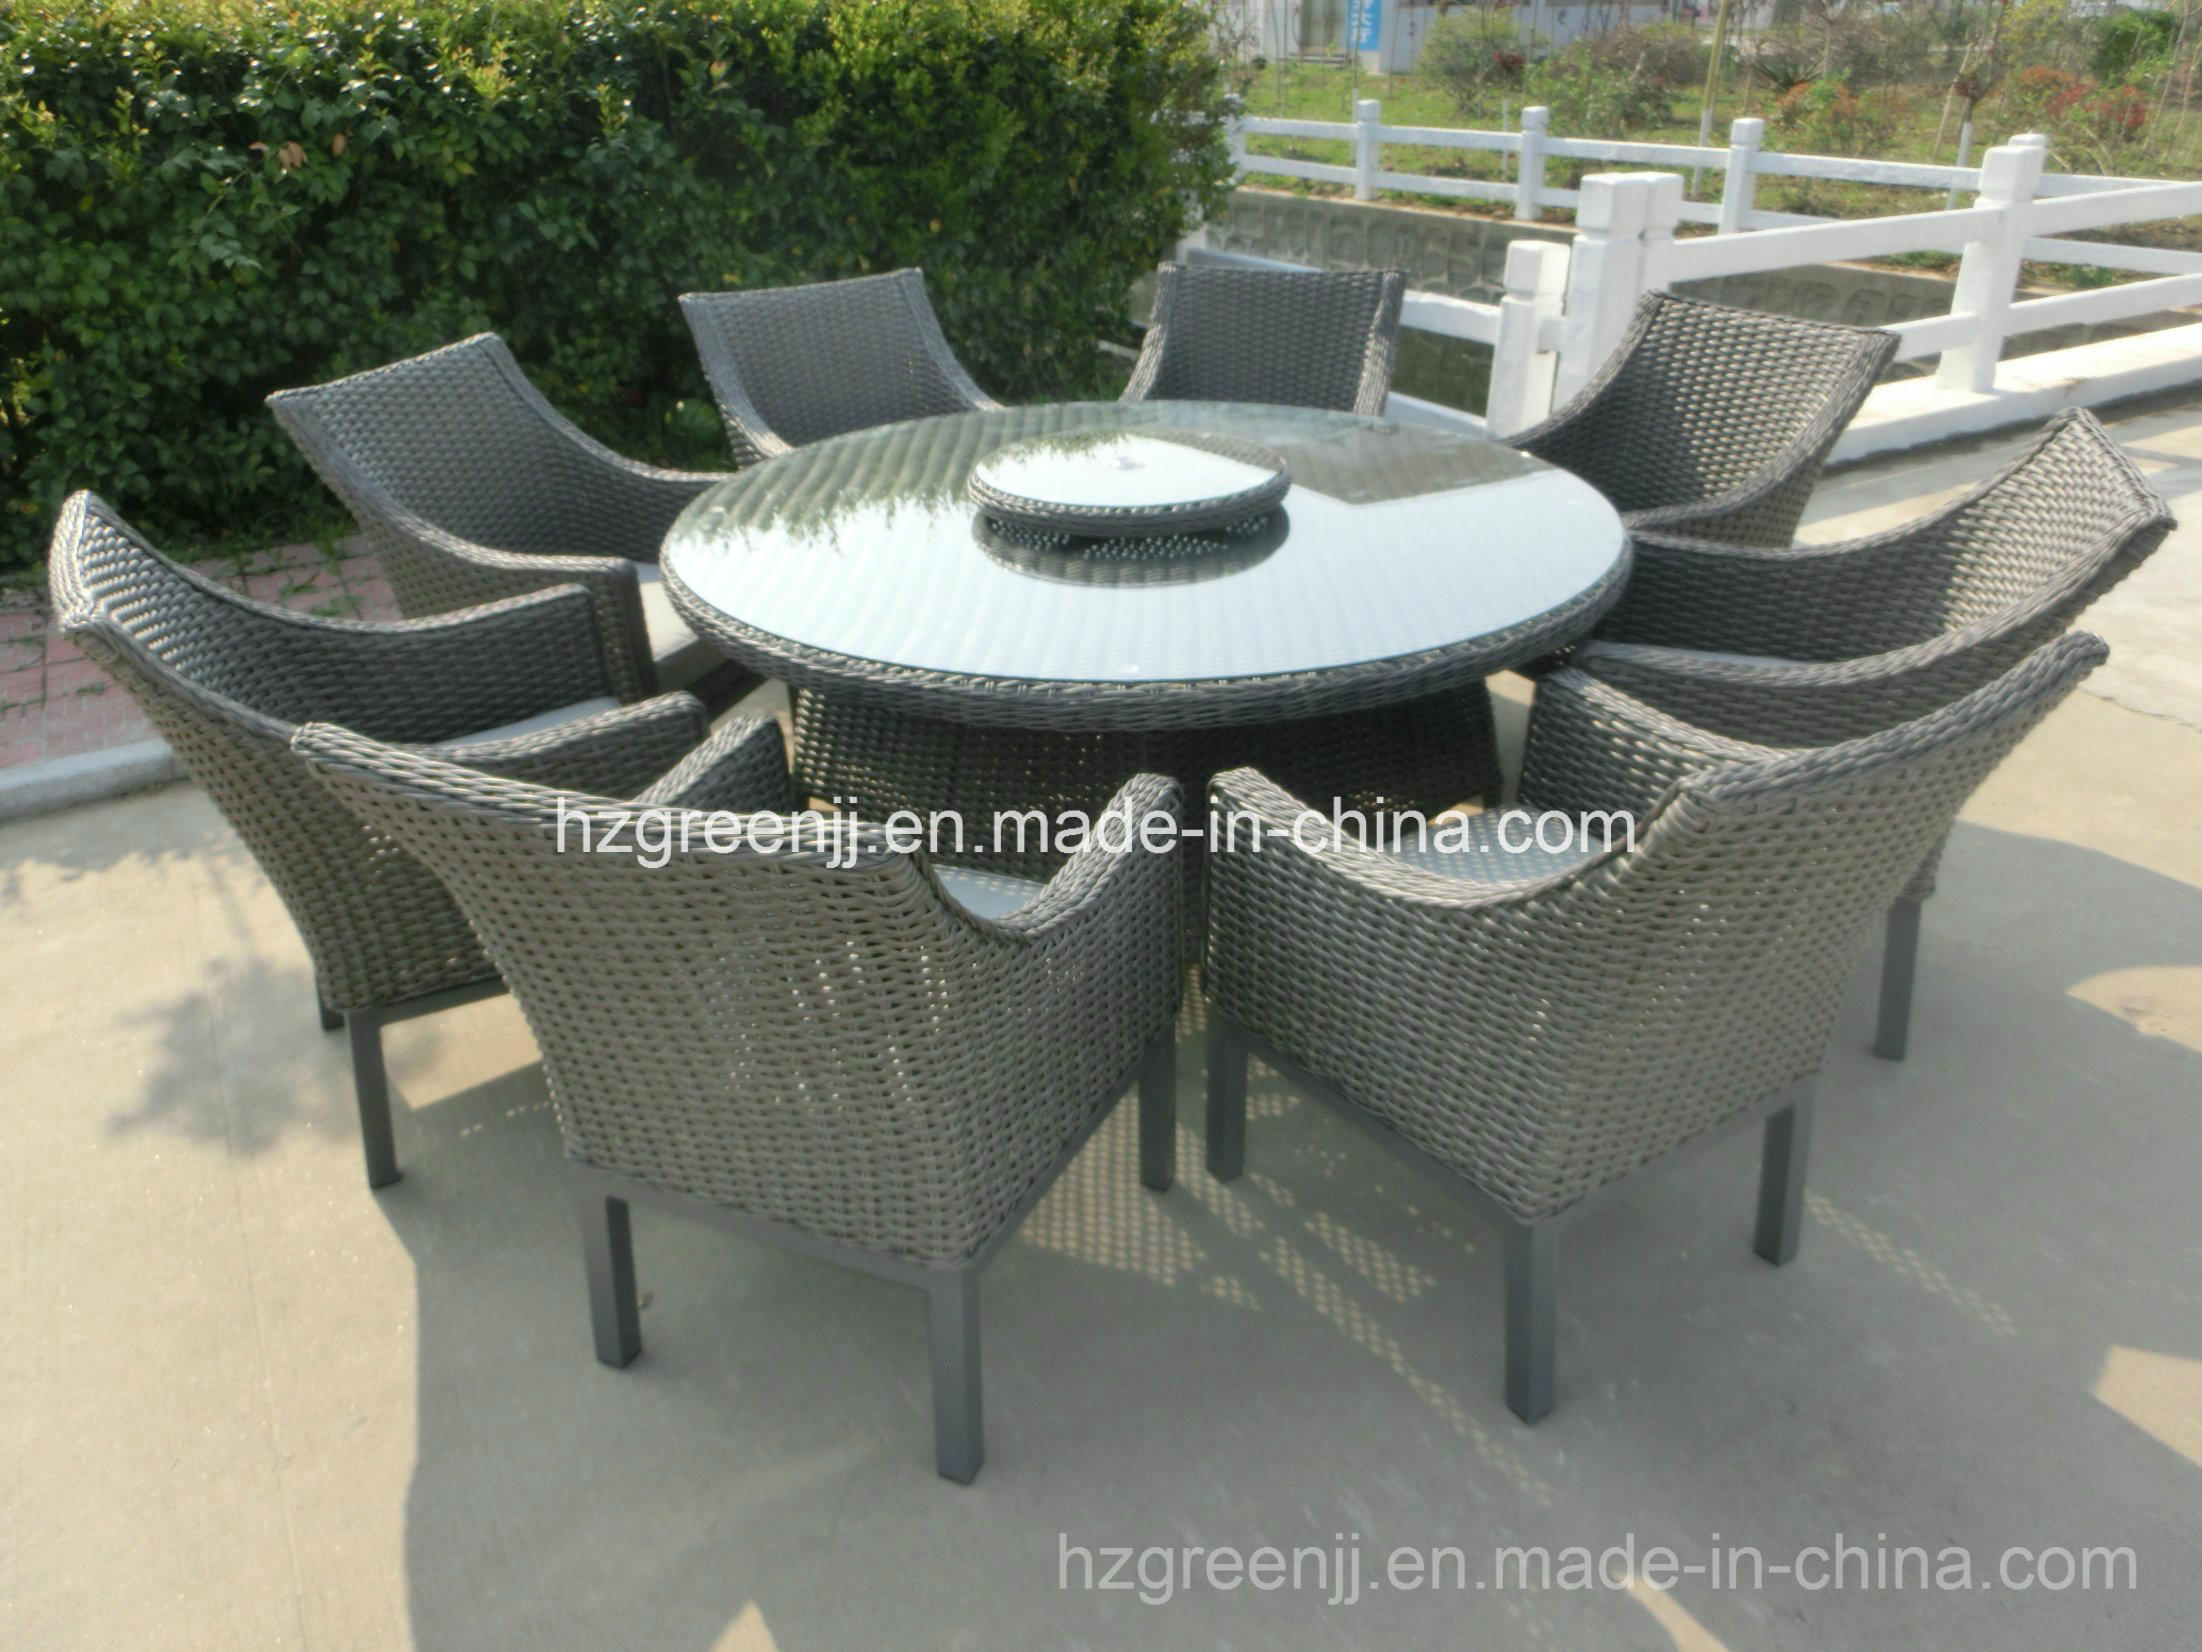 Round Dining Set with Lazy Susan 9 Pieces Rattan Furniture